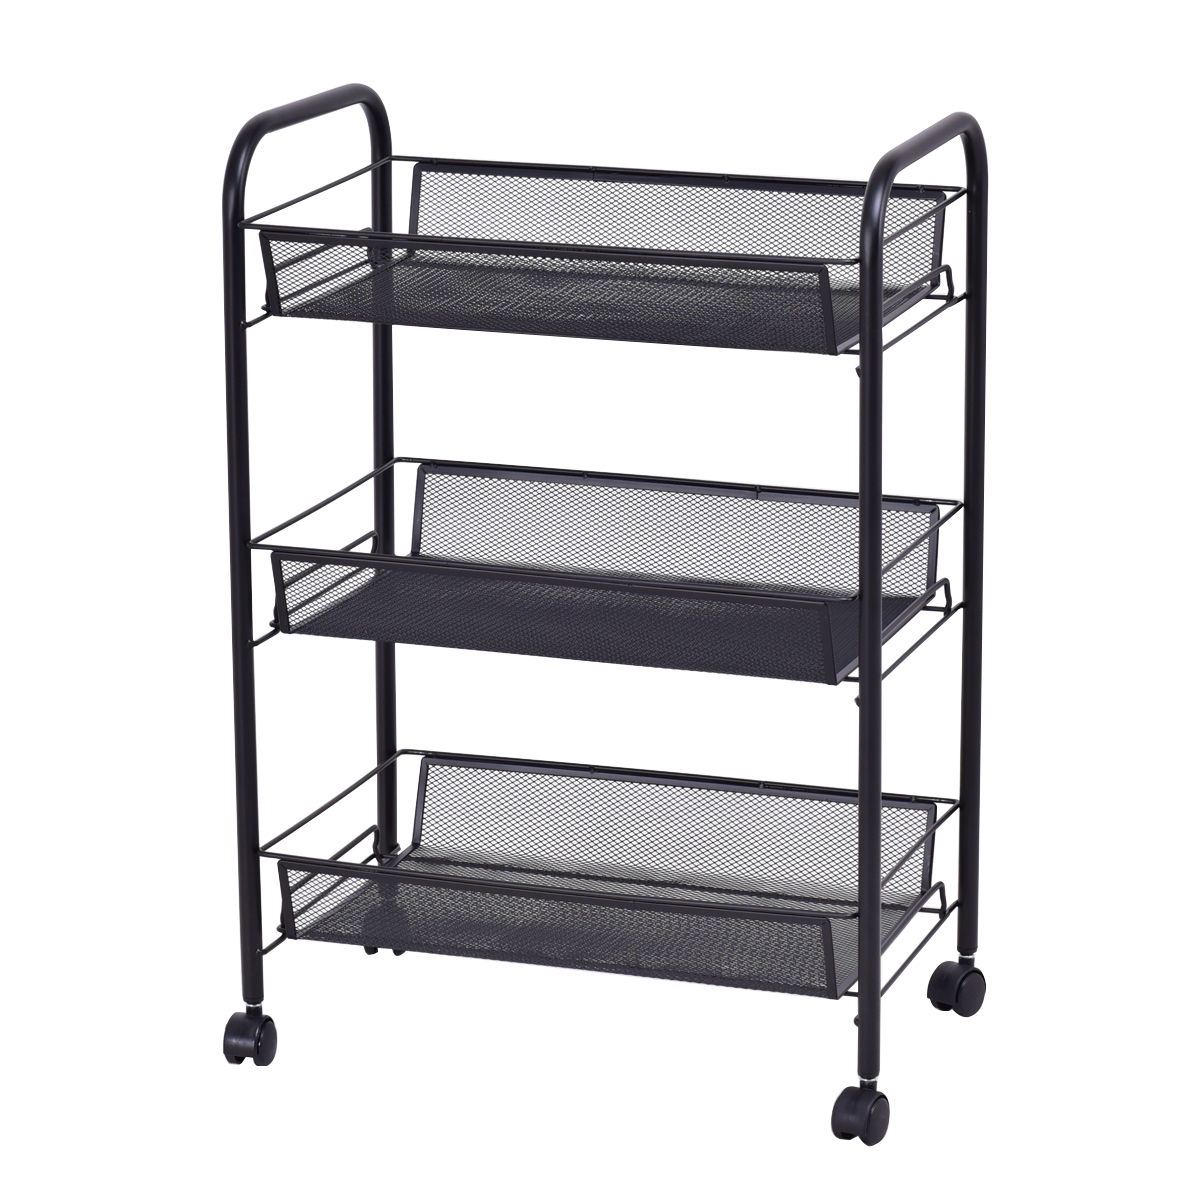 Giantex 3 Tier Mesh Rolling File Utility Cart Home Office Kitchen Storage  Basket Modern Portable Trolley Cart HW54961BK In Bookcases From Furniture  On ...